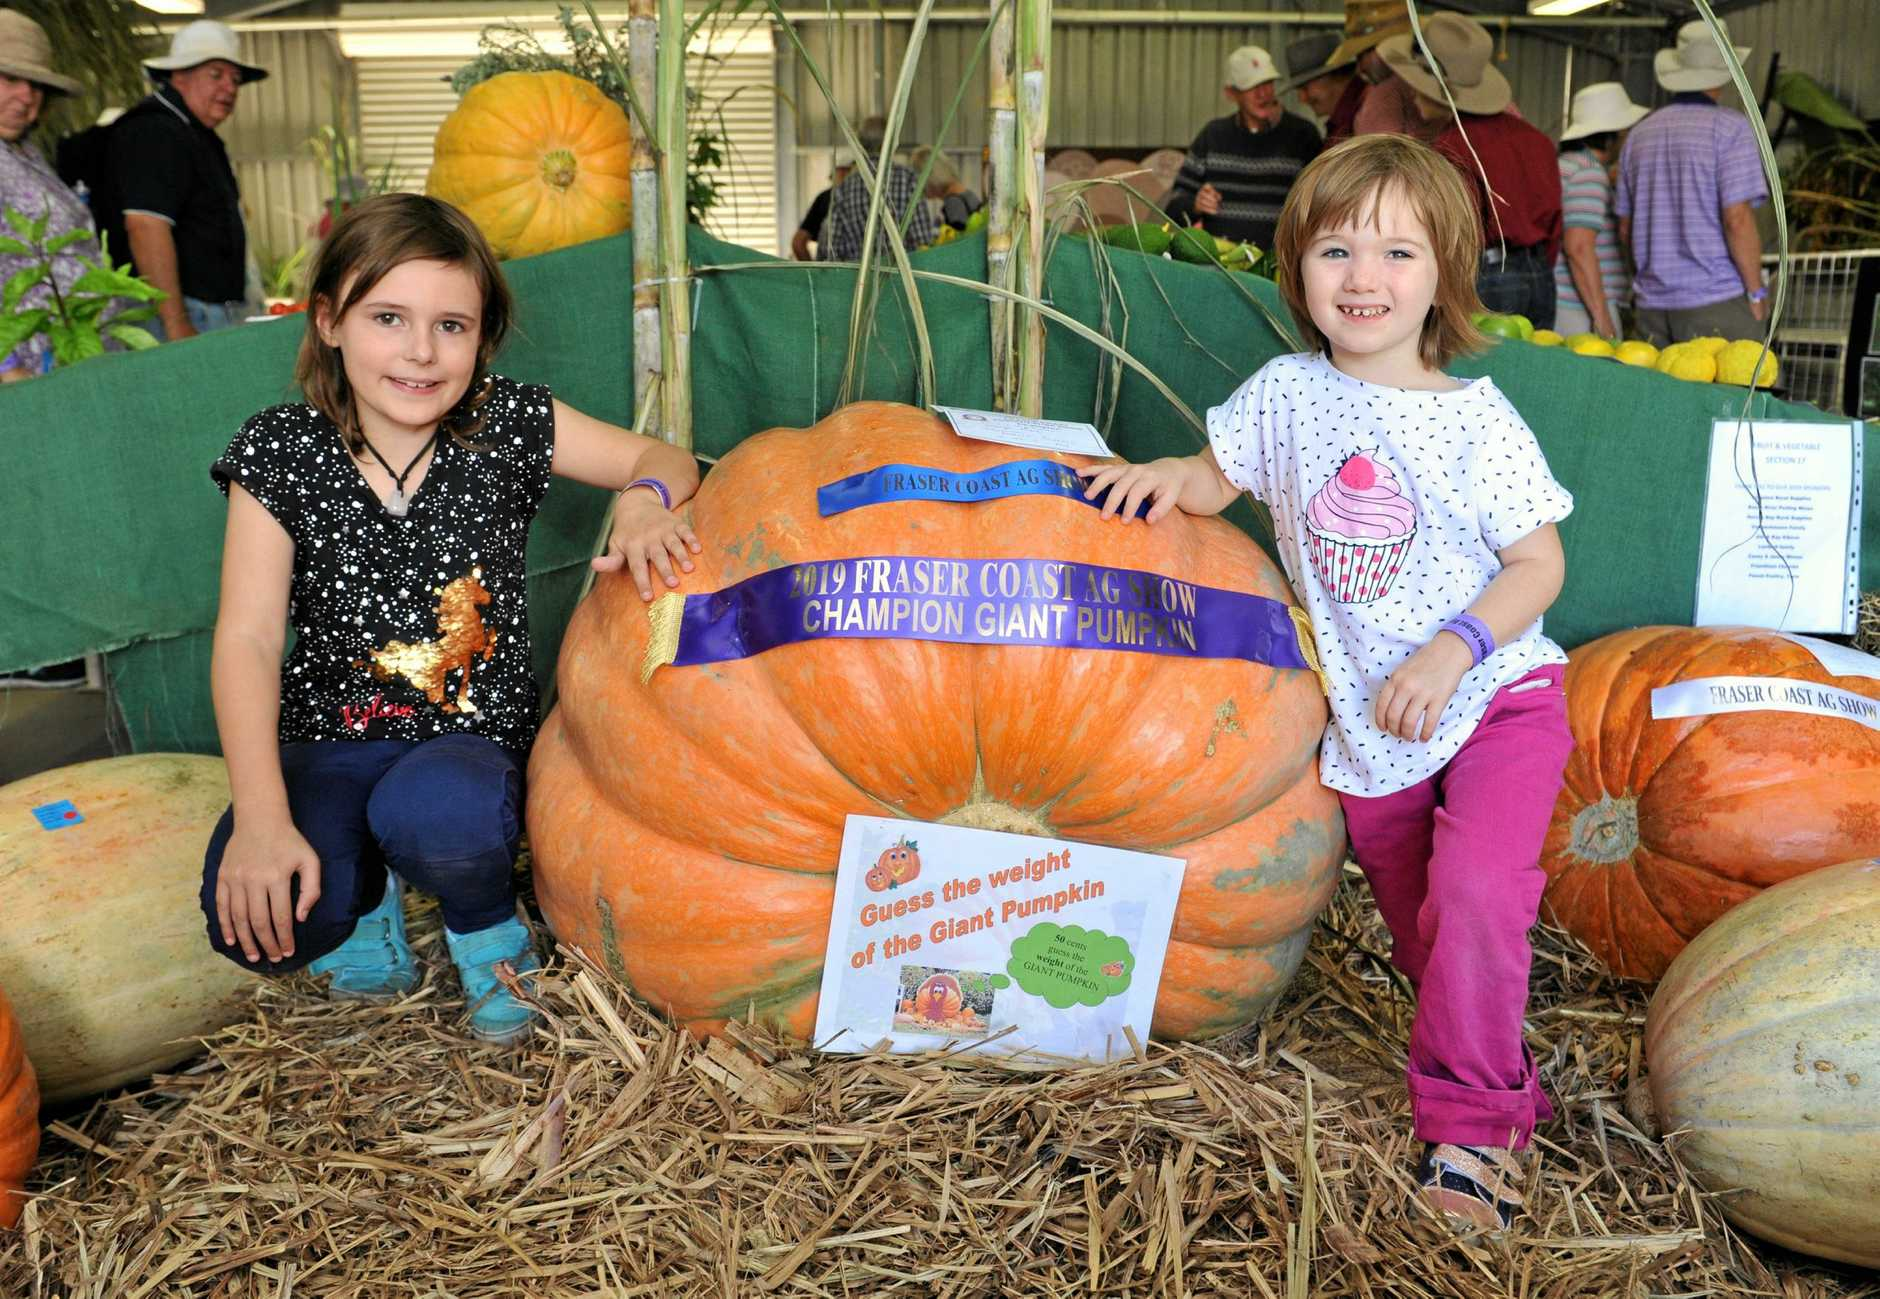 CHAMPIONS ON SHOW: Lily, 7, and Mae, 4, Allen from Burrum Heads get up close to George May's champion pumpkin.